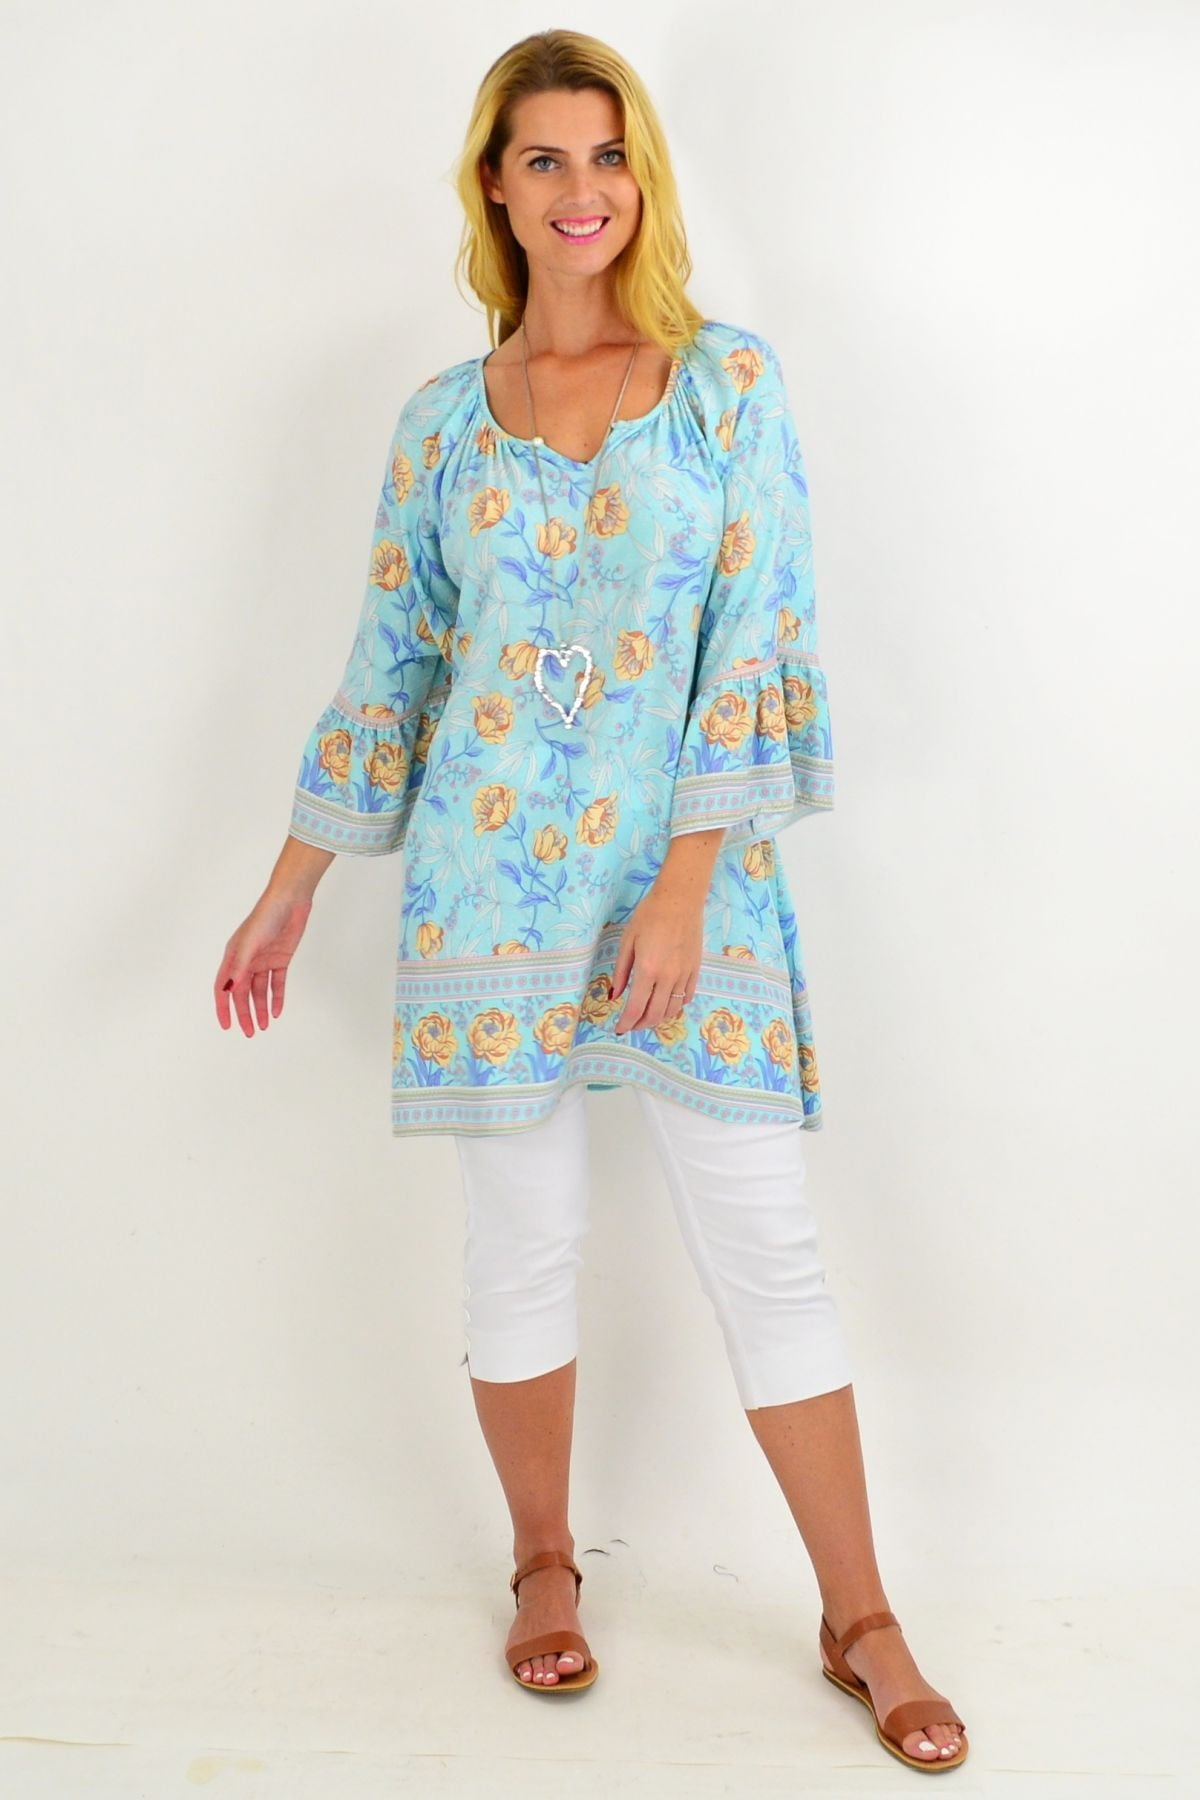 Light Blue Floral Light & Pretty Tunic Top | I Love Tunics | Tunic Tops | Tunic | Tunic Dresses  | womens clothing online